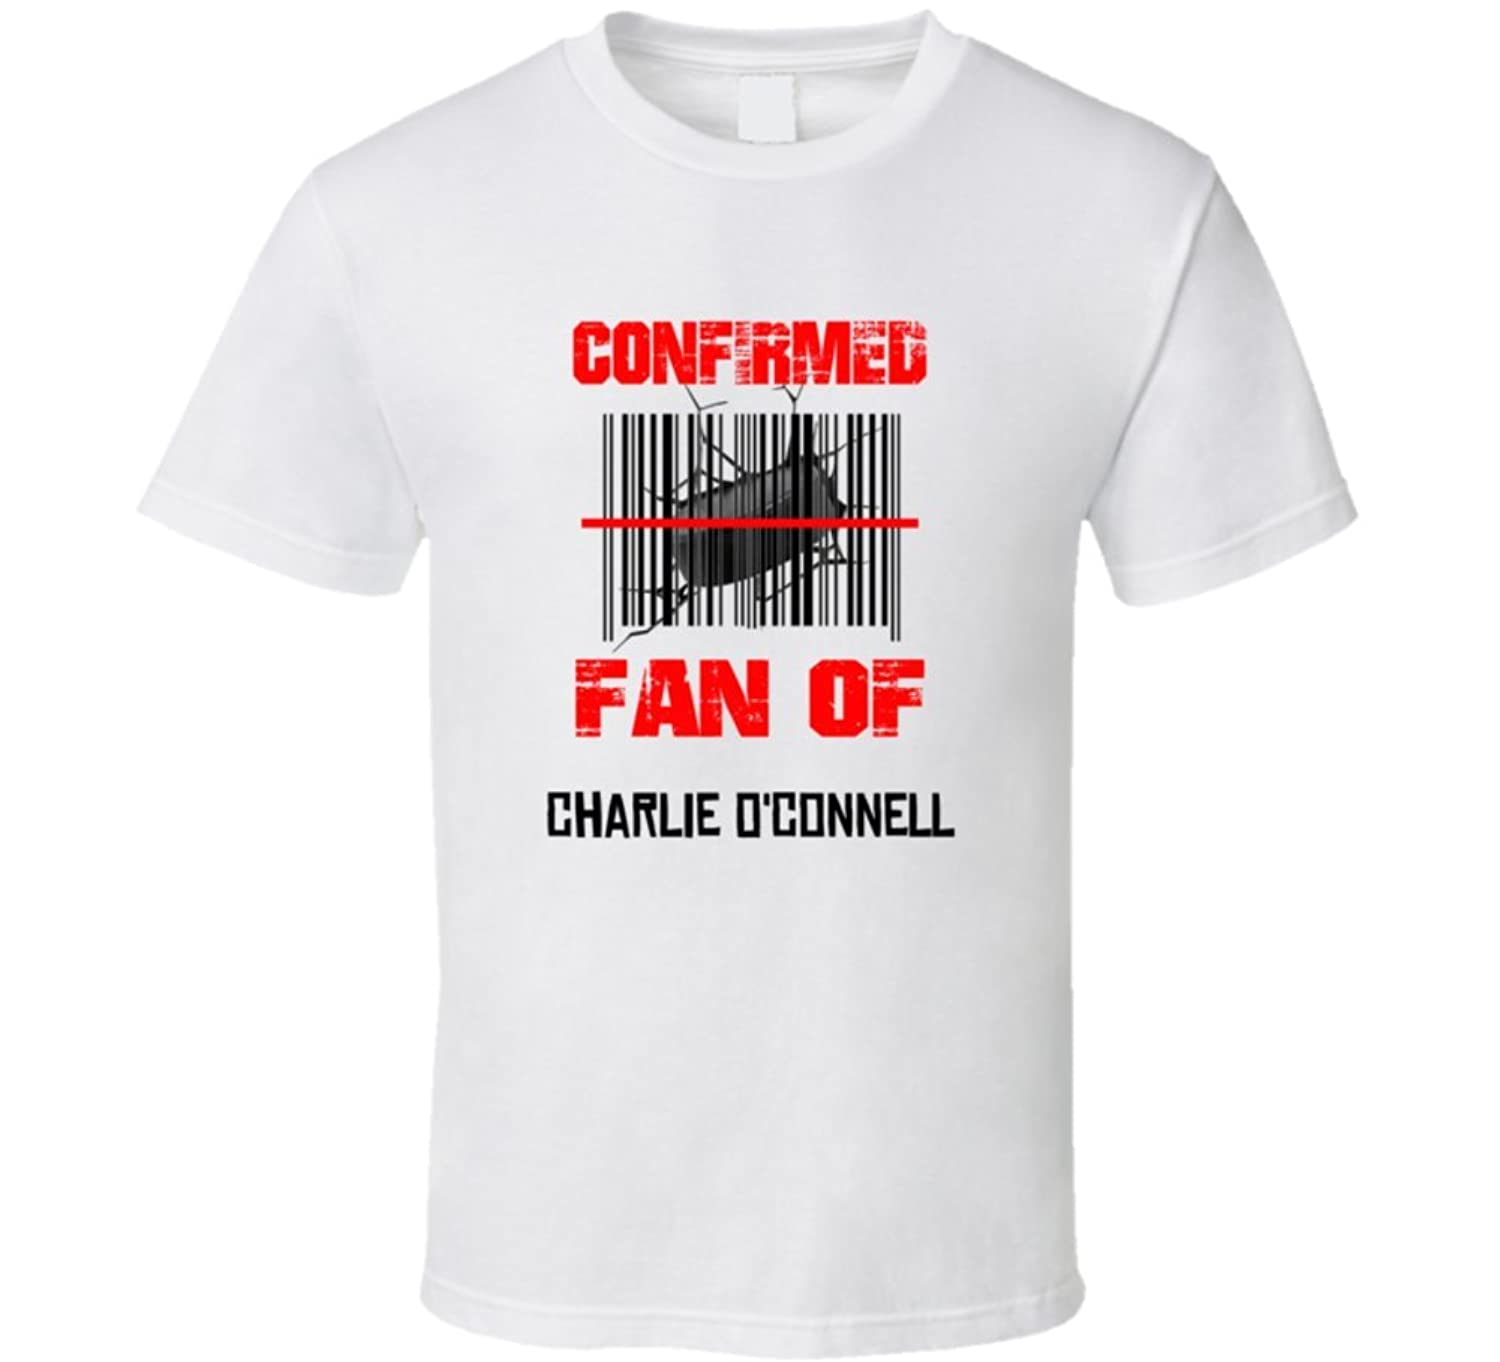 Charlie O'Connell NHL Scanned Barcode Fan T shirt 2XL White